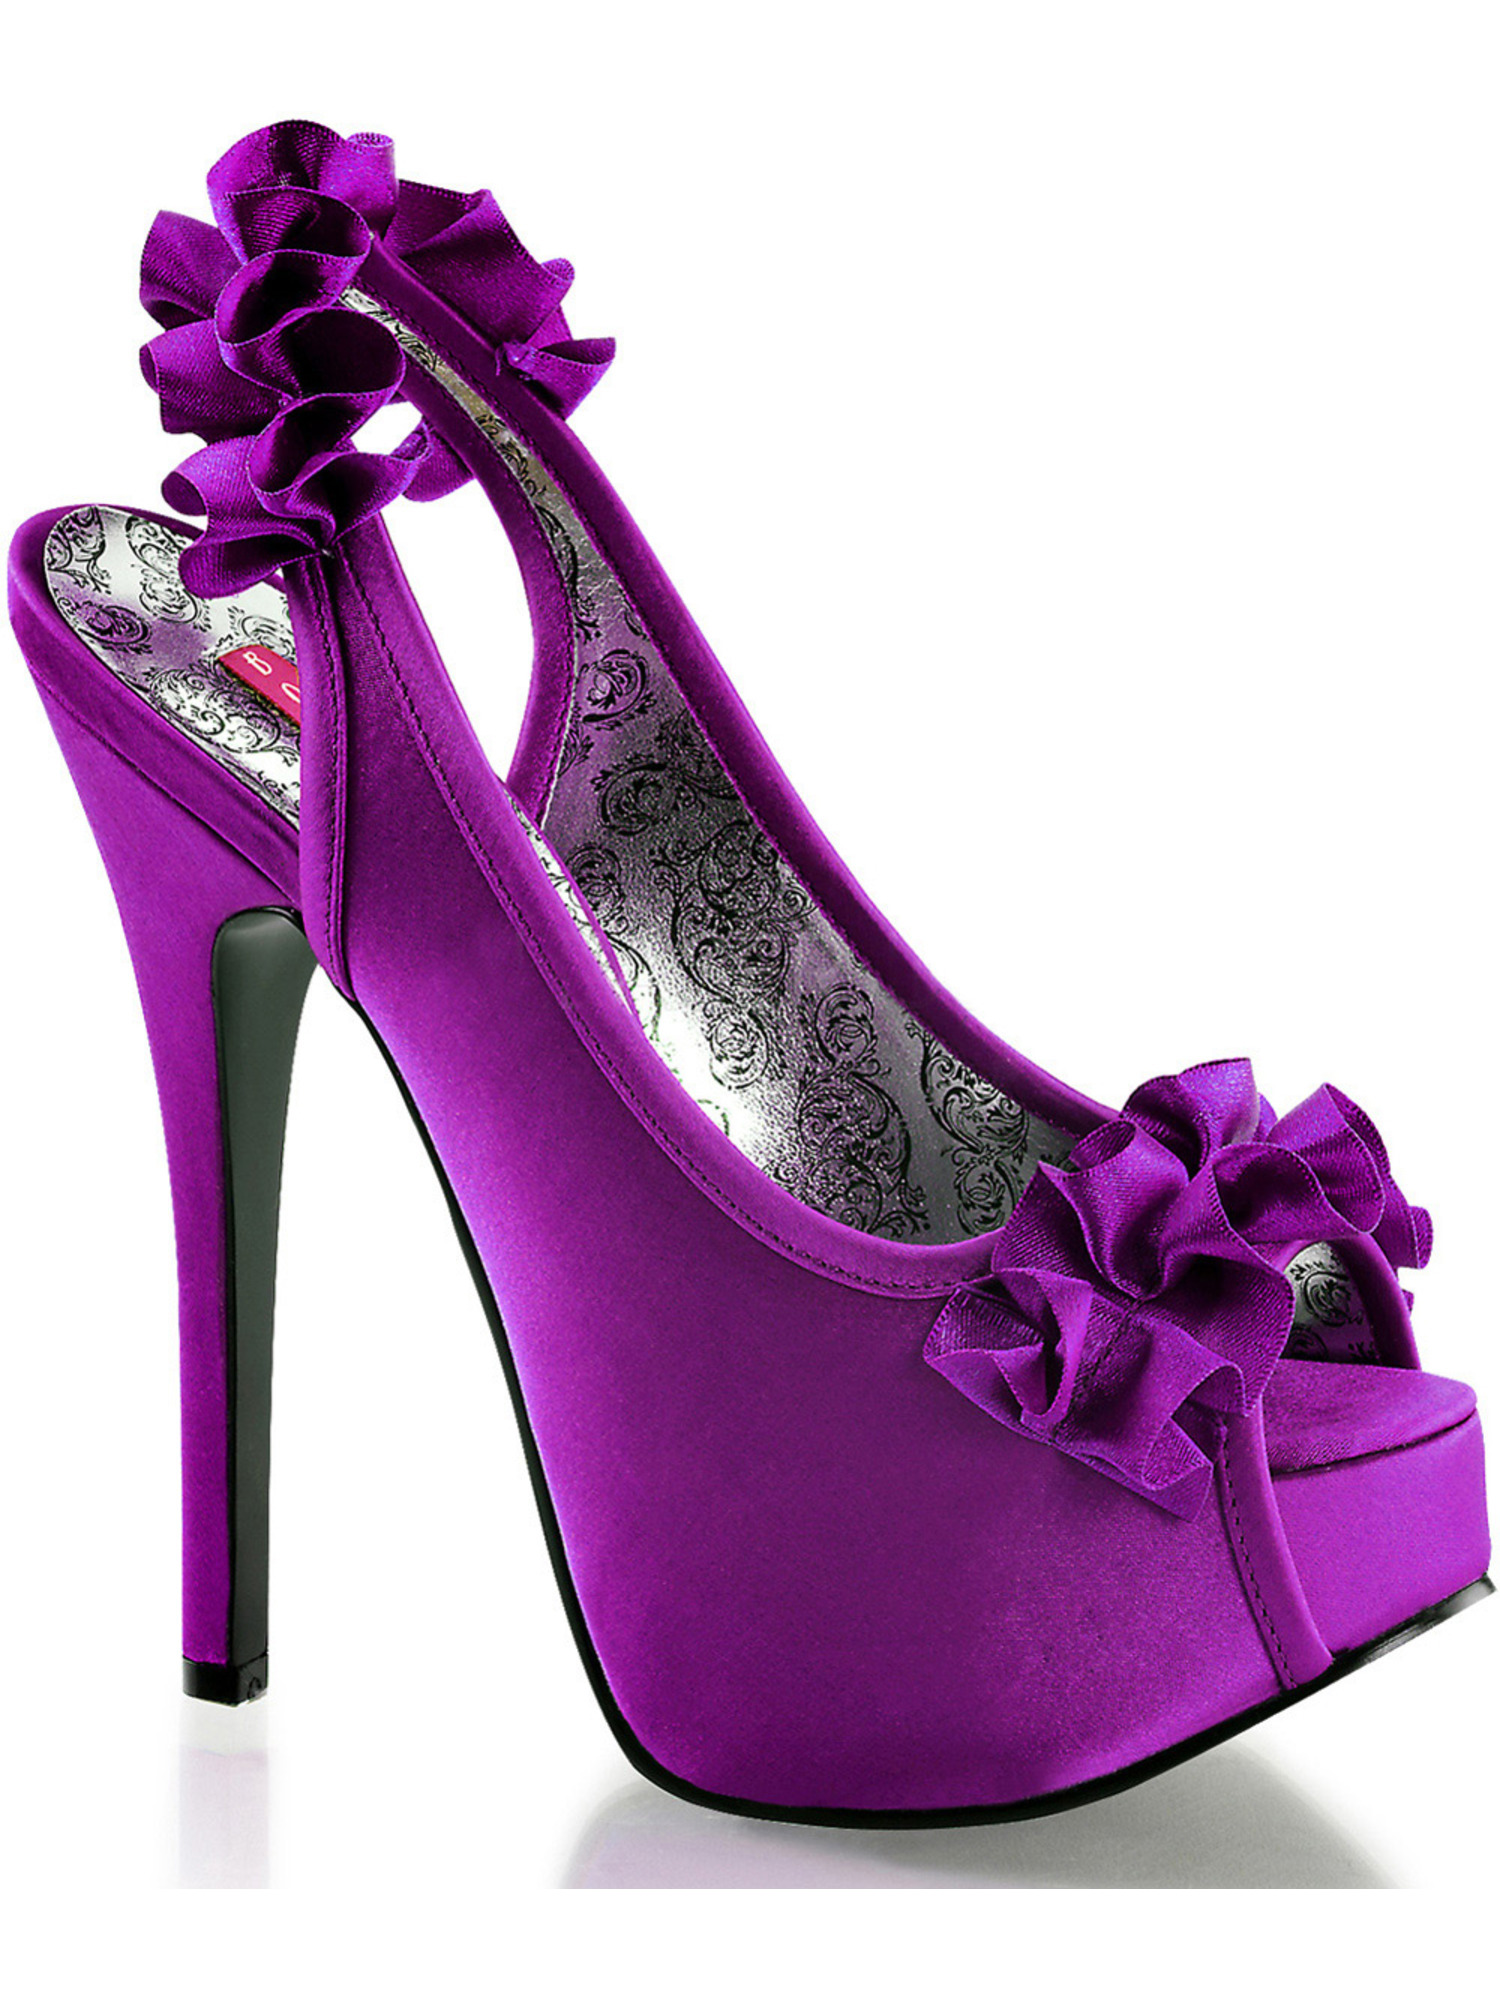 Womens Purple Satin Slingback Shoes with Ruffle Trim and 5.75 Inch Heels